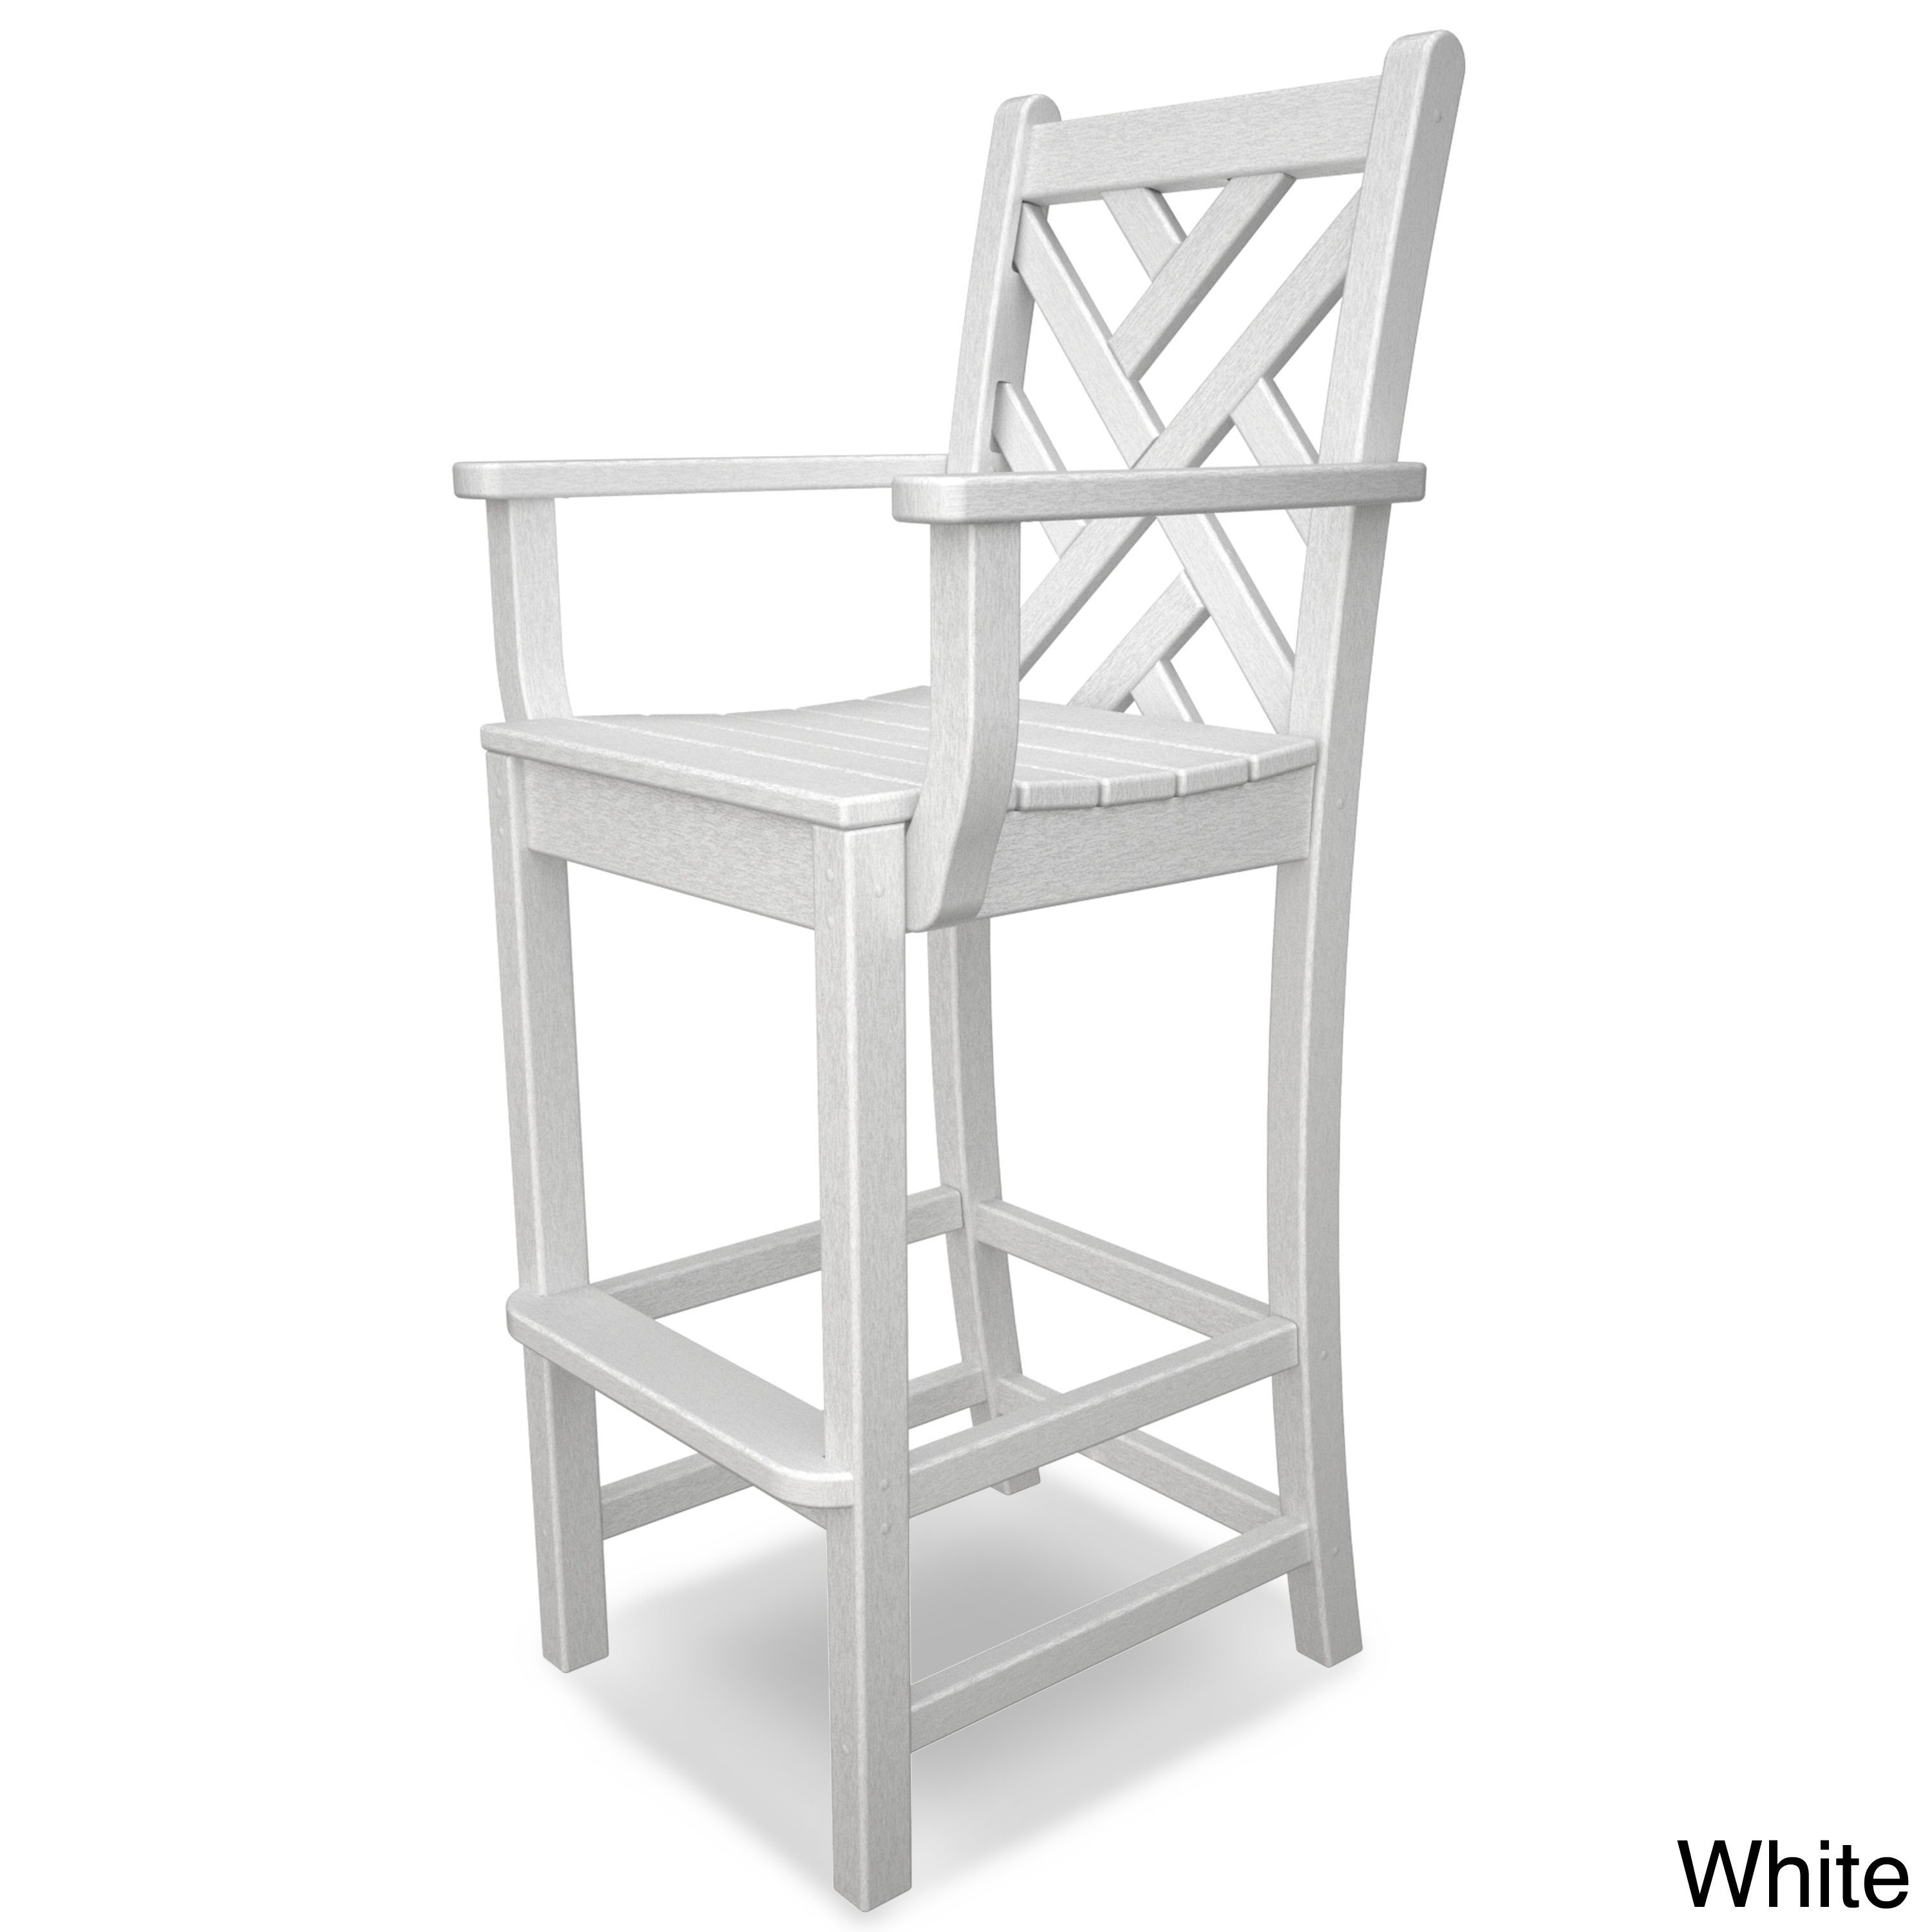 Remarkable Polywood Chippendale Bar Arm Chair White Size Single Onthecornerstone Fun Painted Chair Ideas Images Onthecornerstoneorg